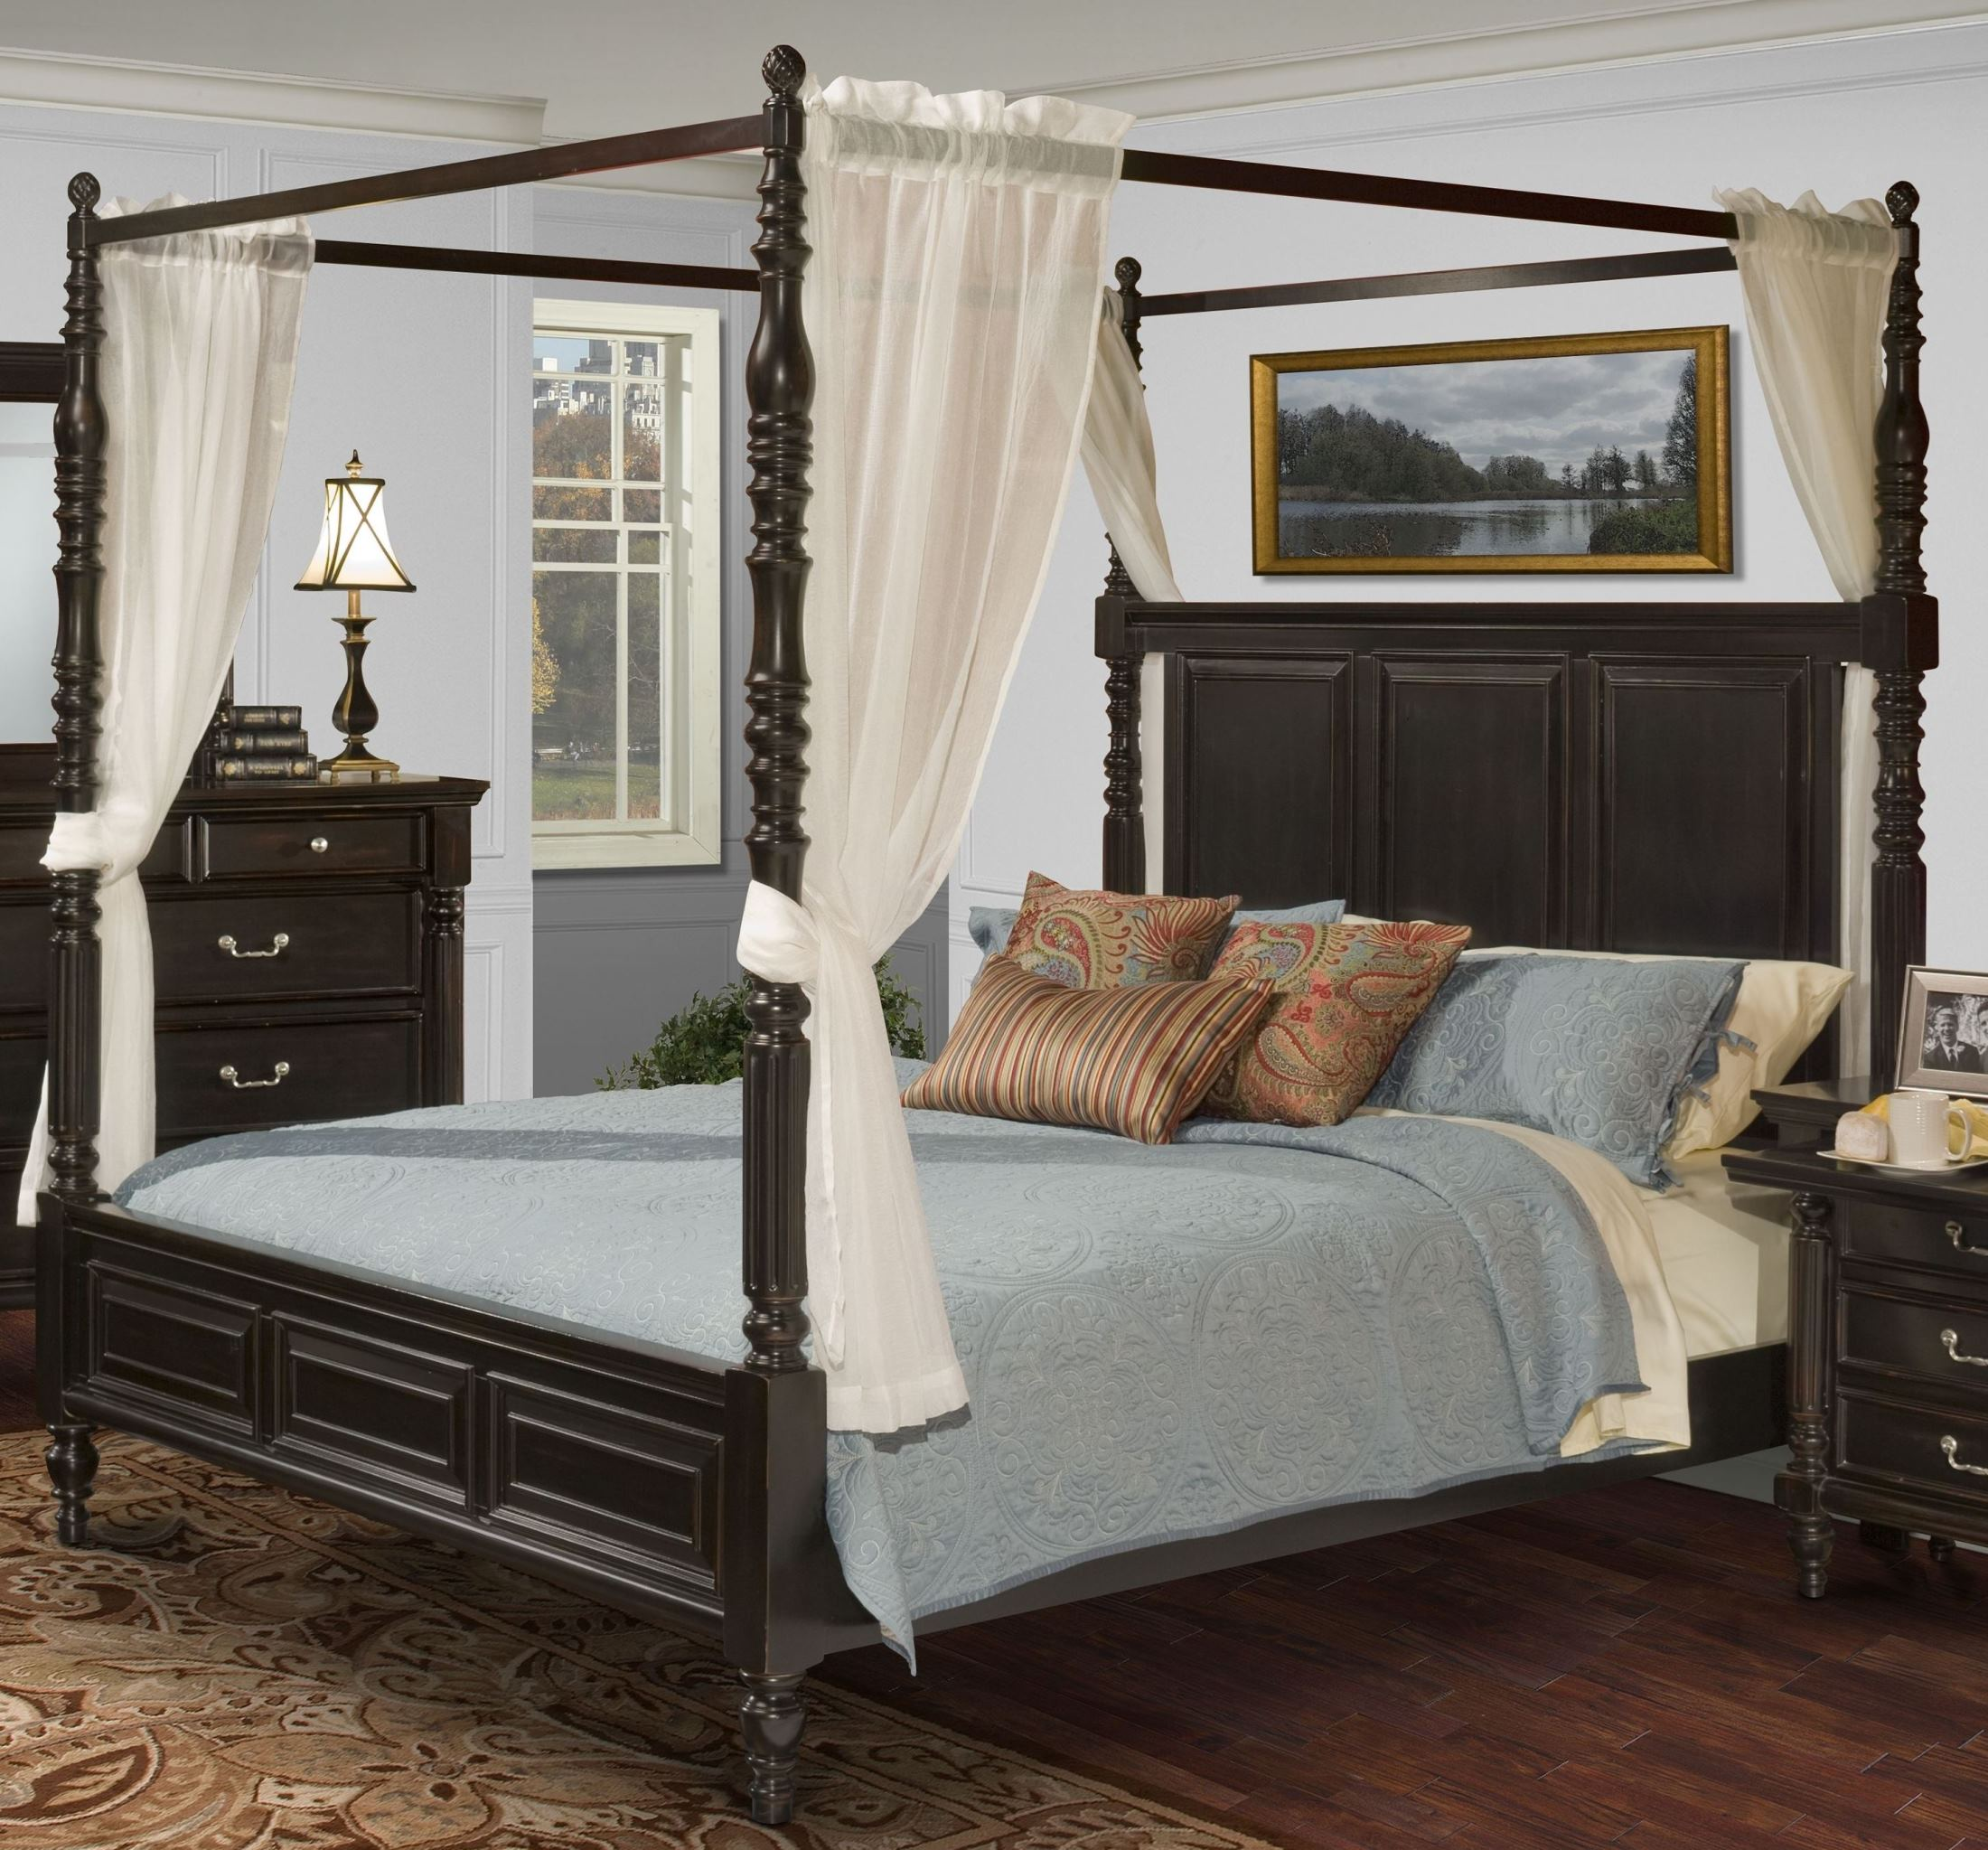 - Martinique Rubbed Black Queen Canopy Bed With Drapes - 1StopBedrooms.